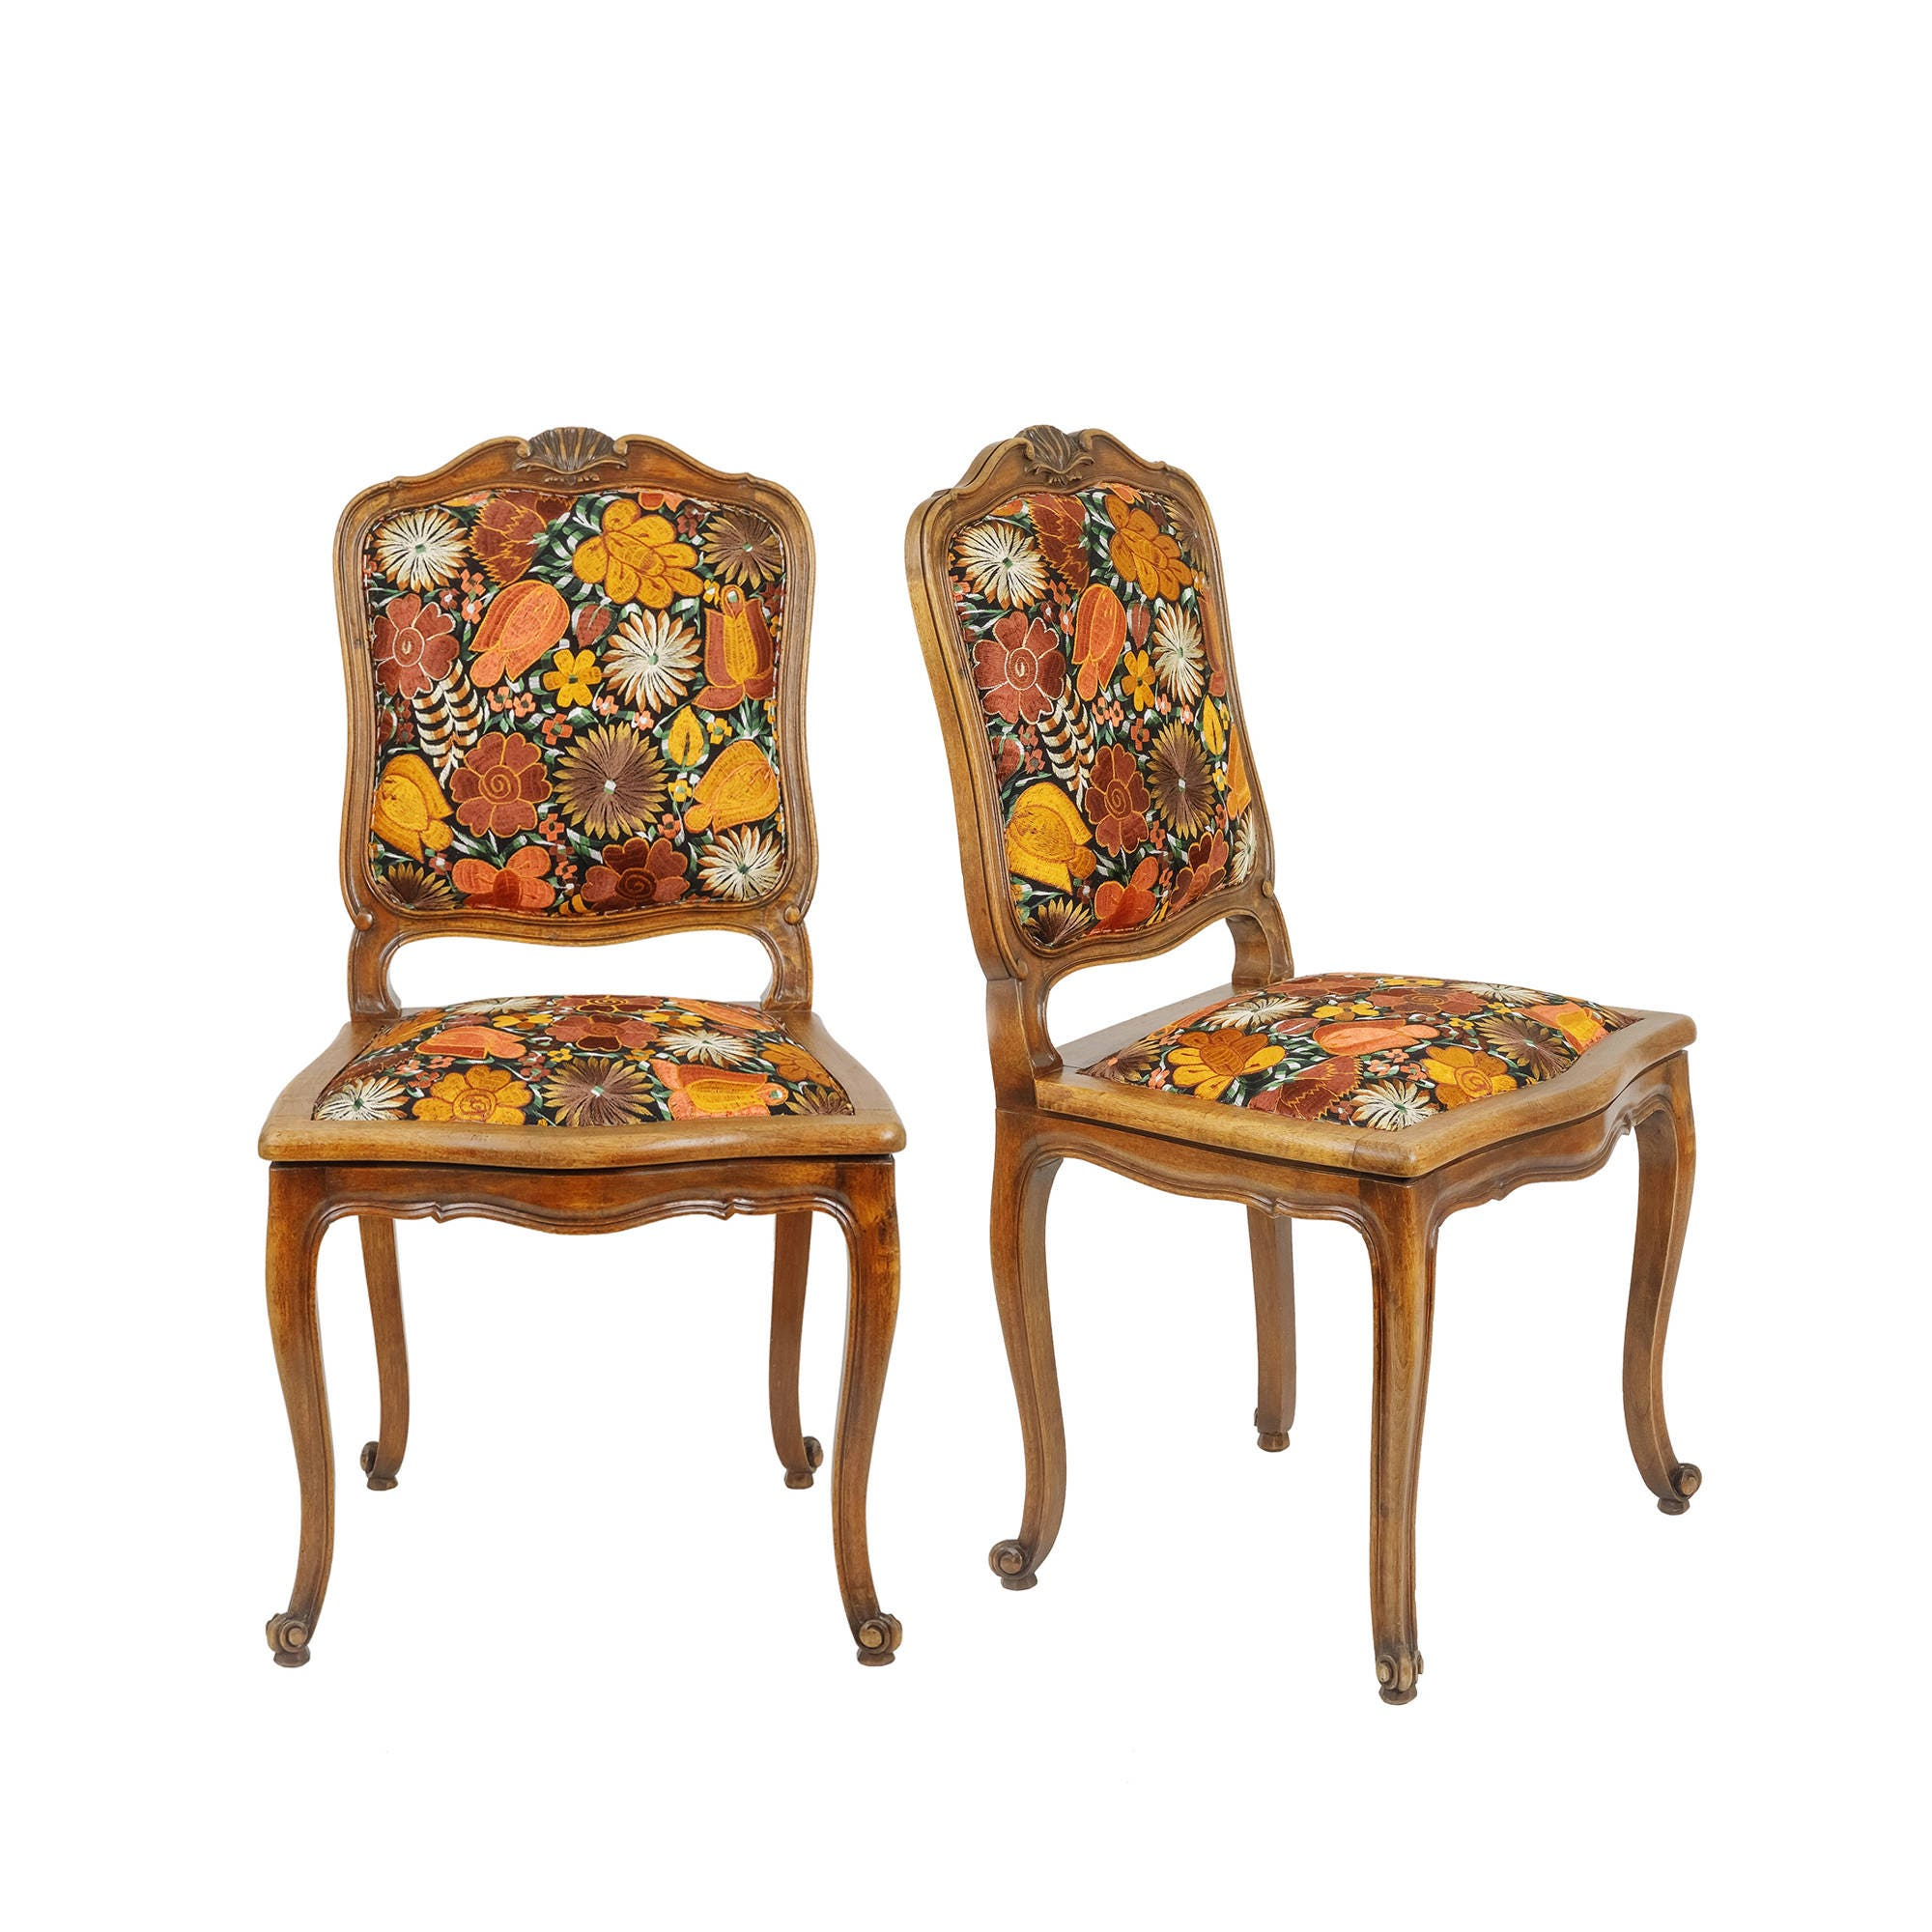 Vintage Reupholstered Chairs Mexican Embroidery